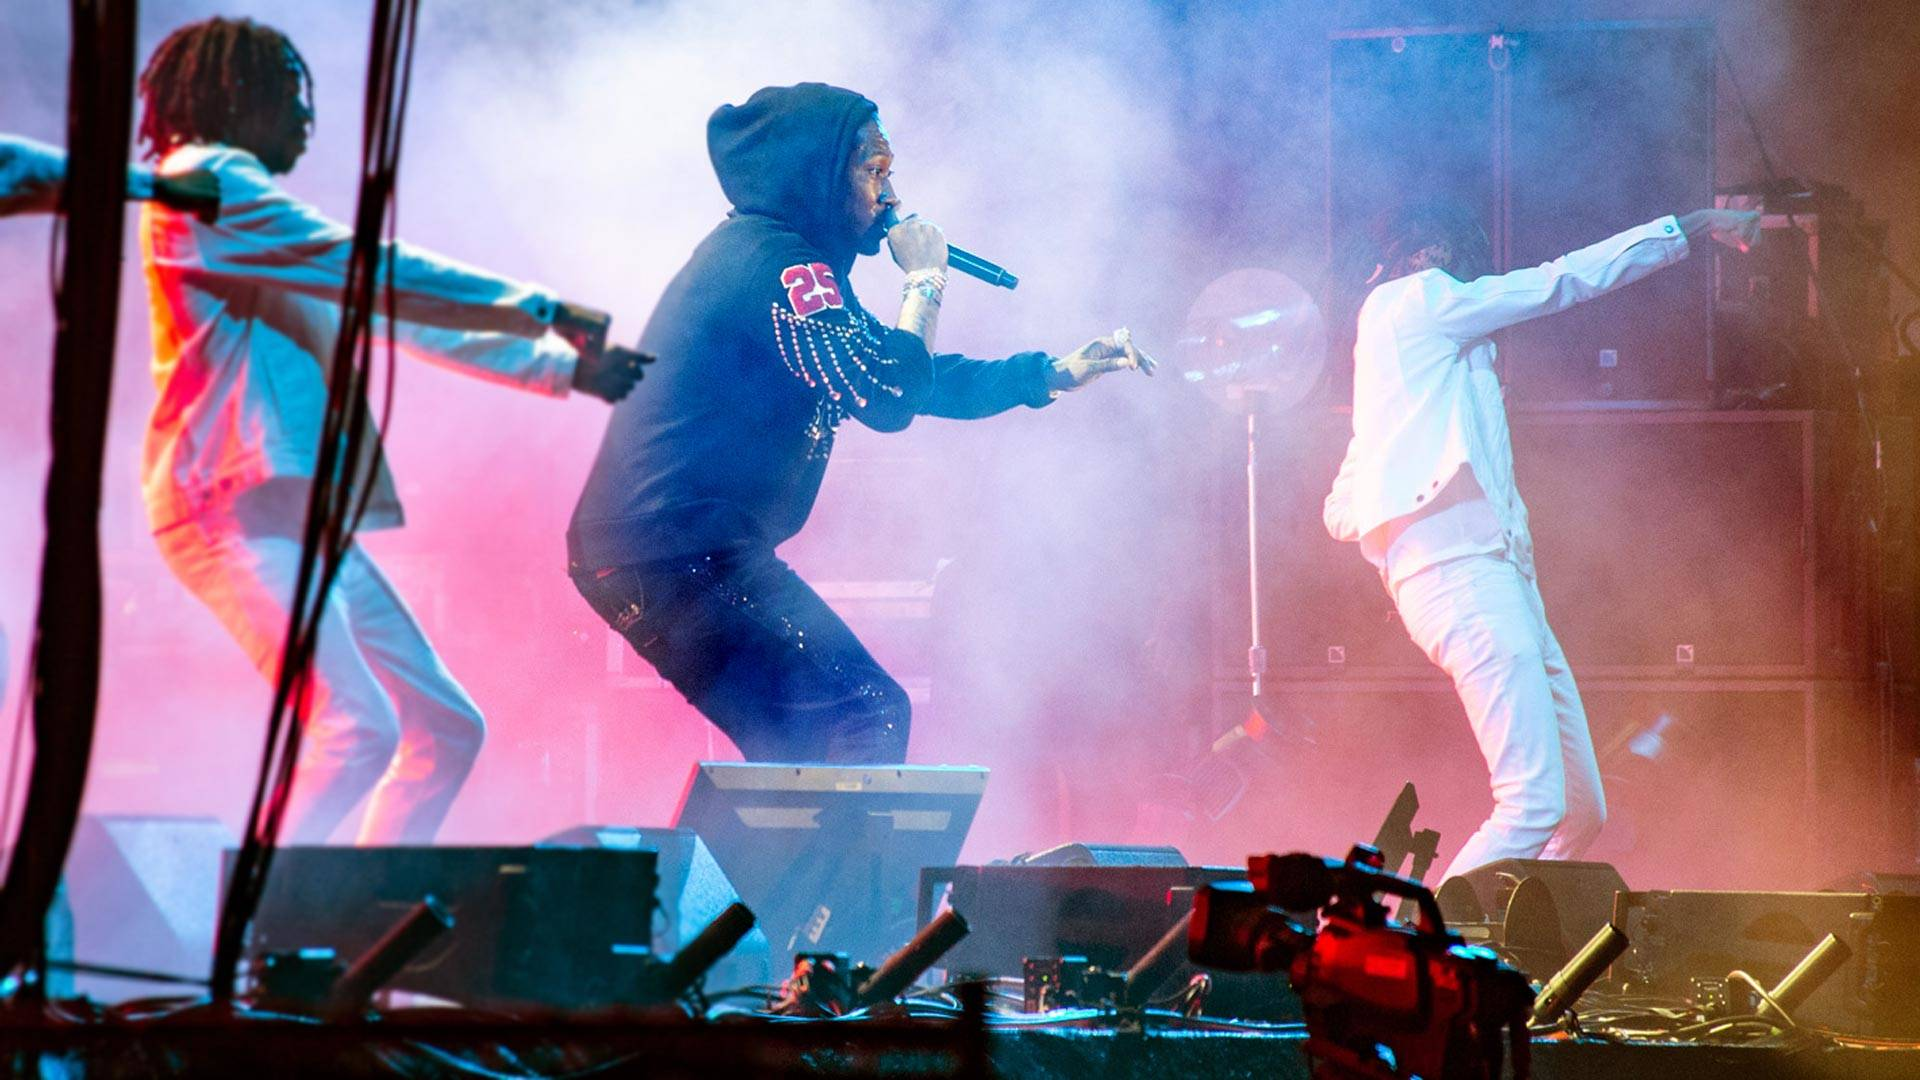 Future performs at Outside Lands music festival in San Francisco, Aug. 11, 2018. Estefany Gonzalez